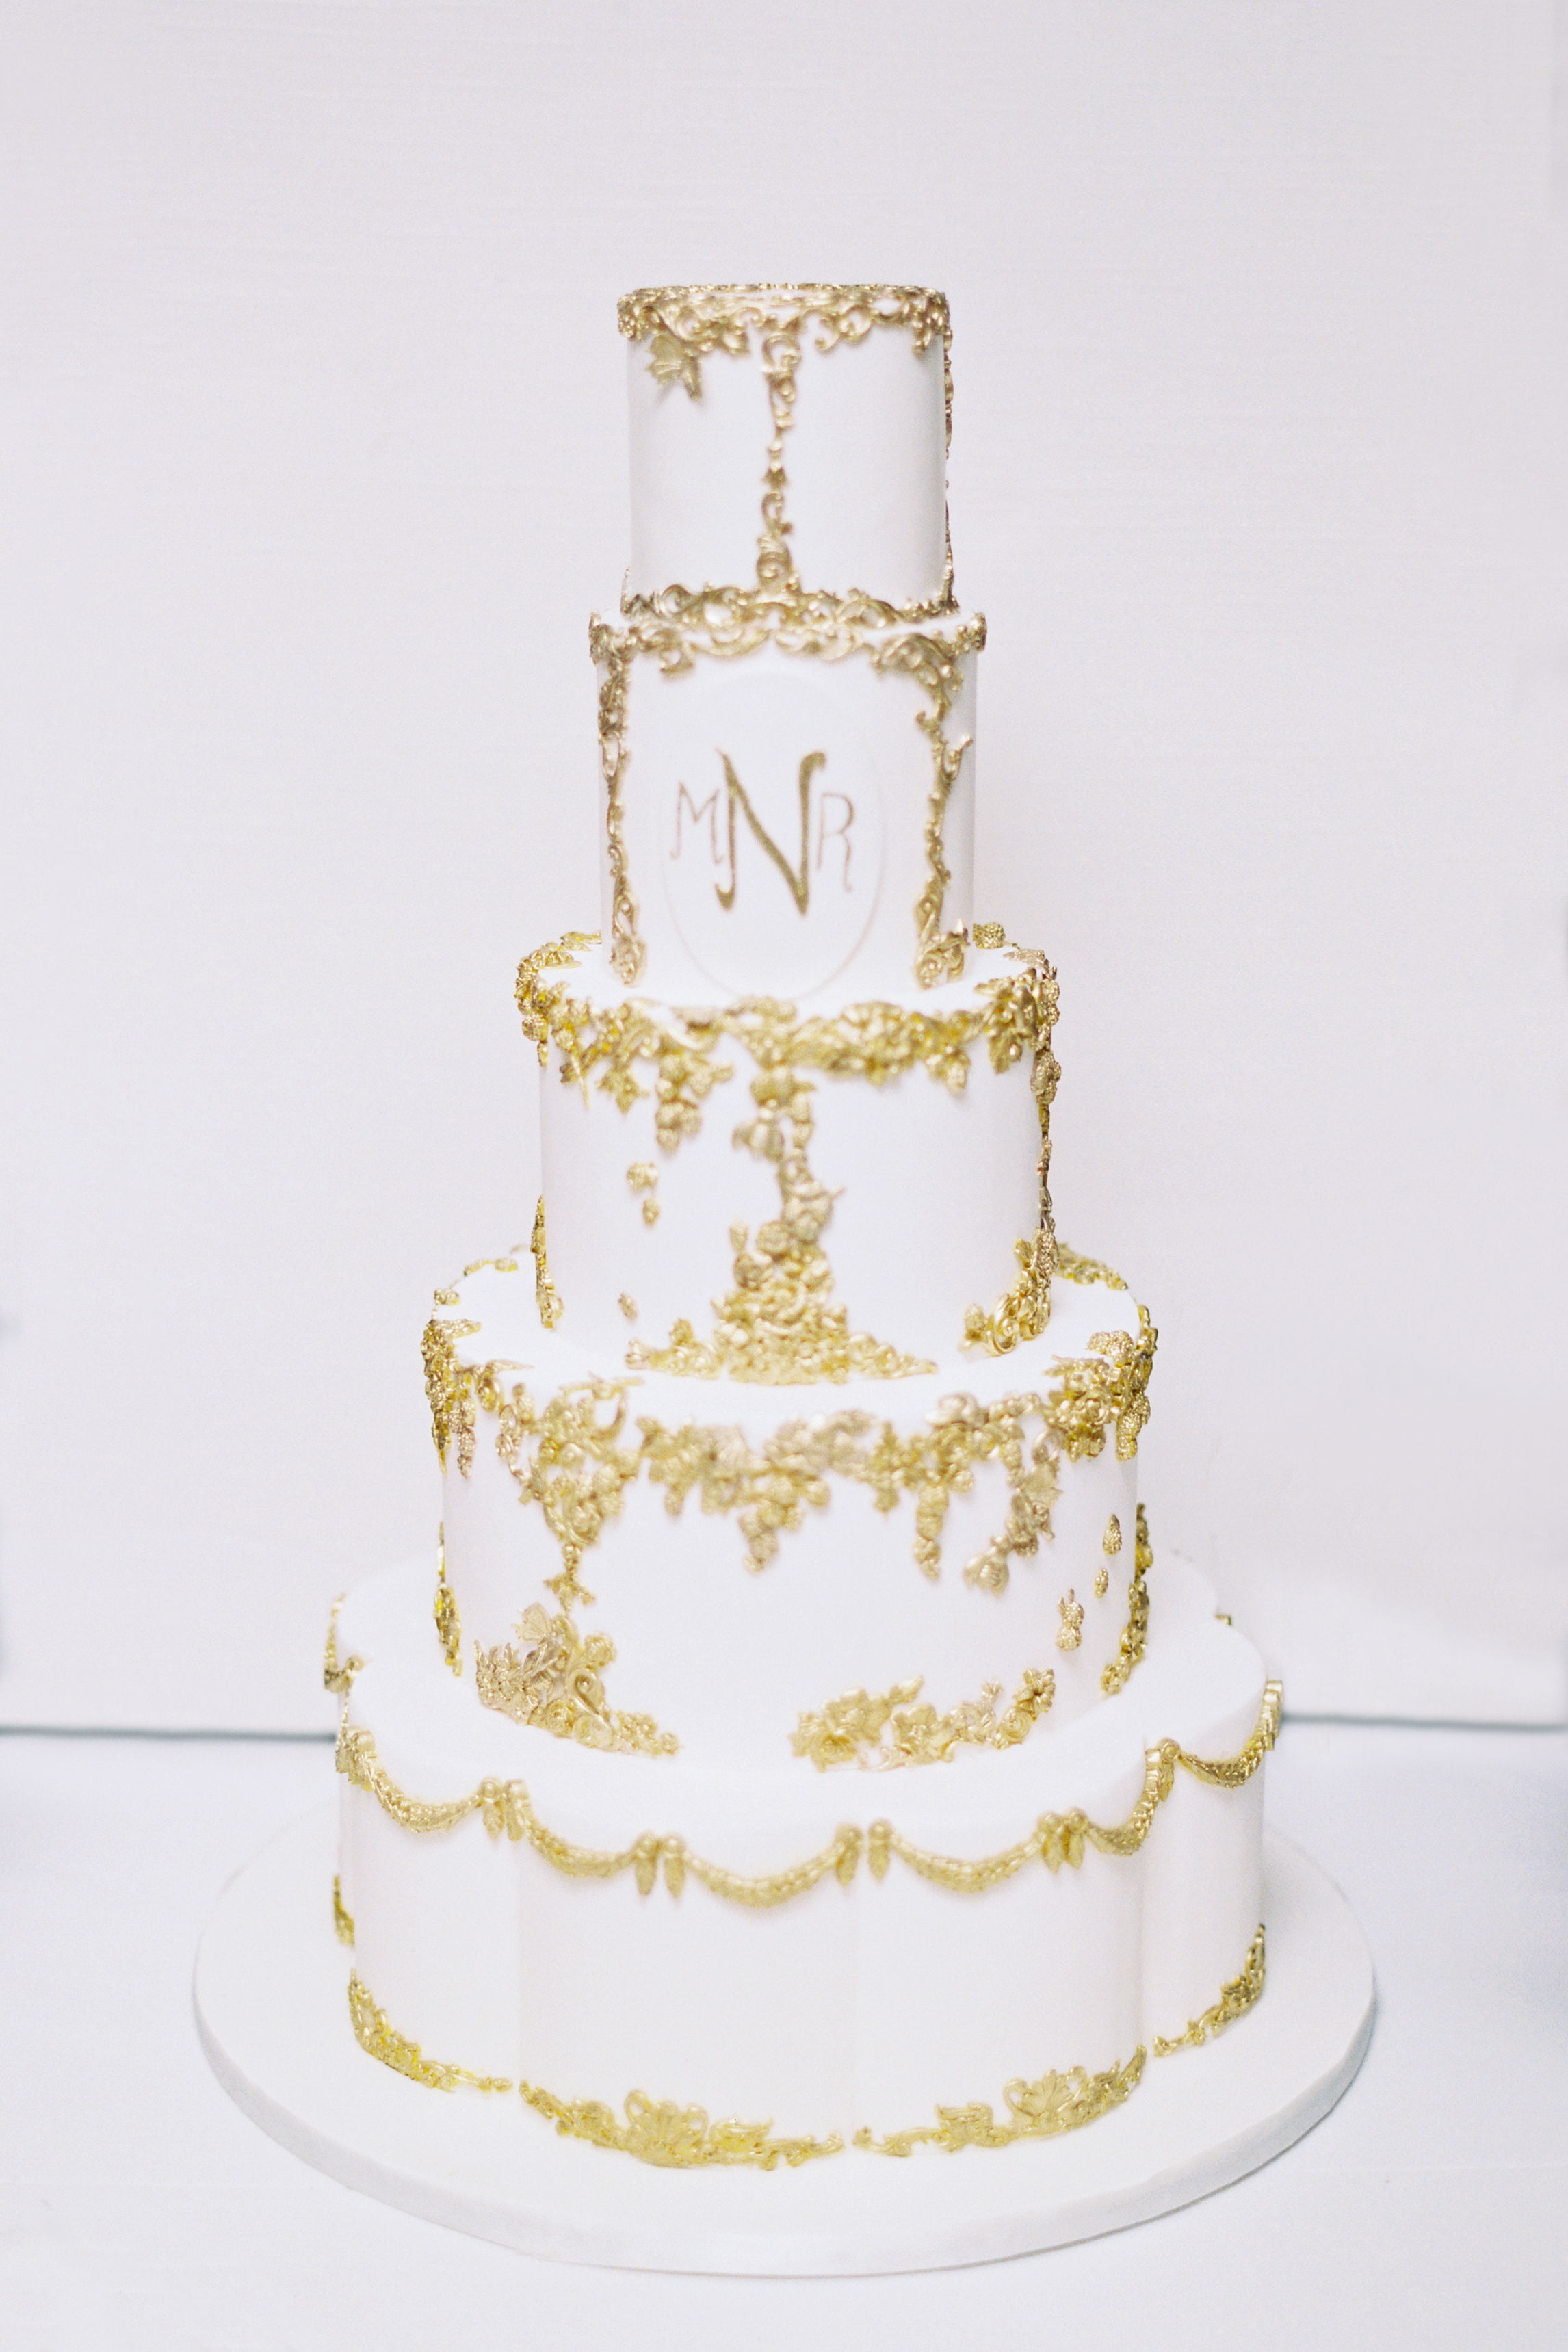 White wedding cake with gold bas relief and monogram